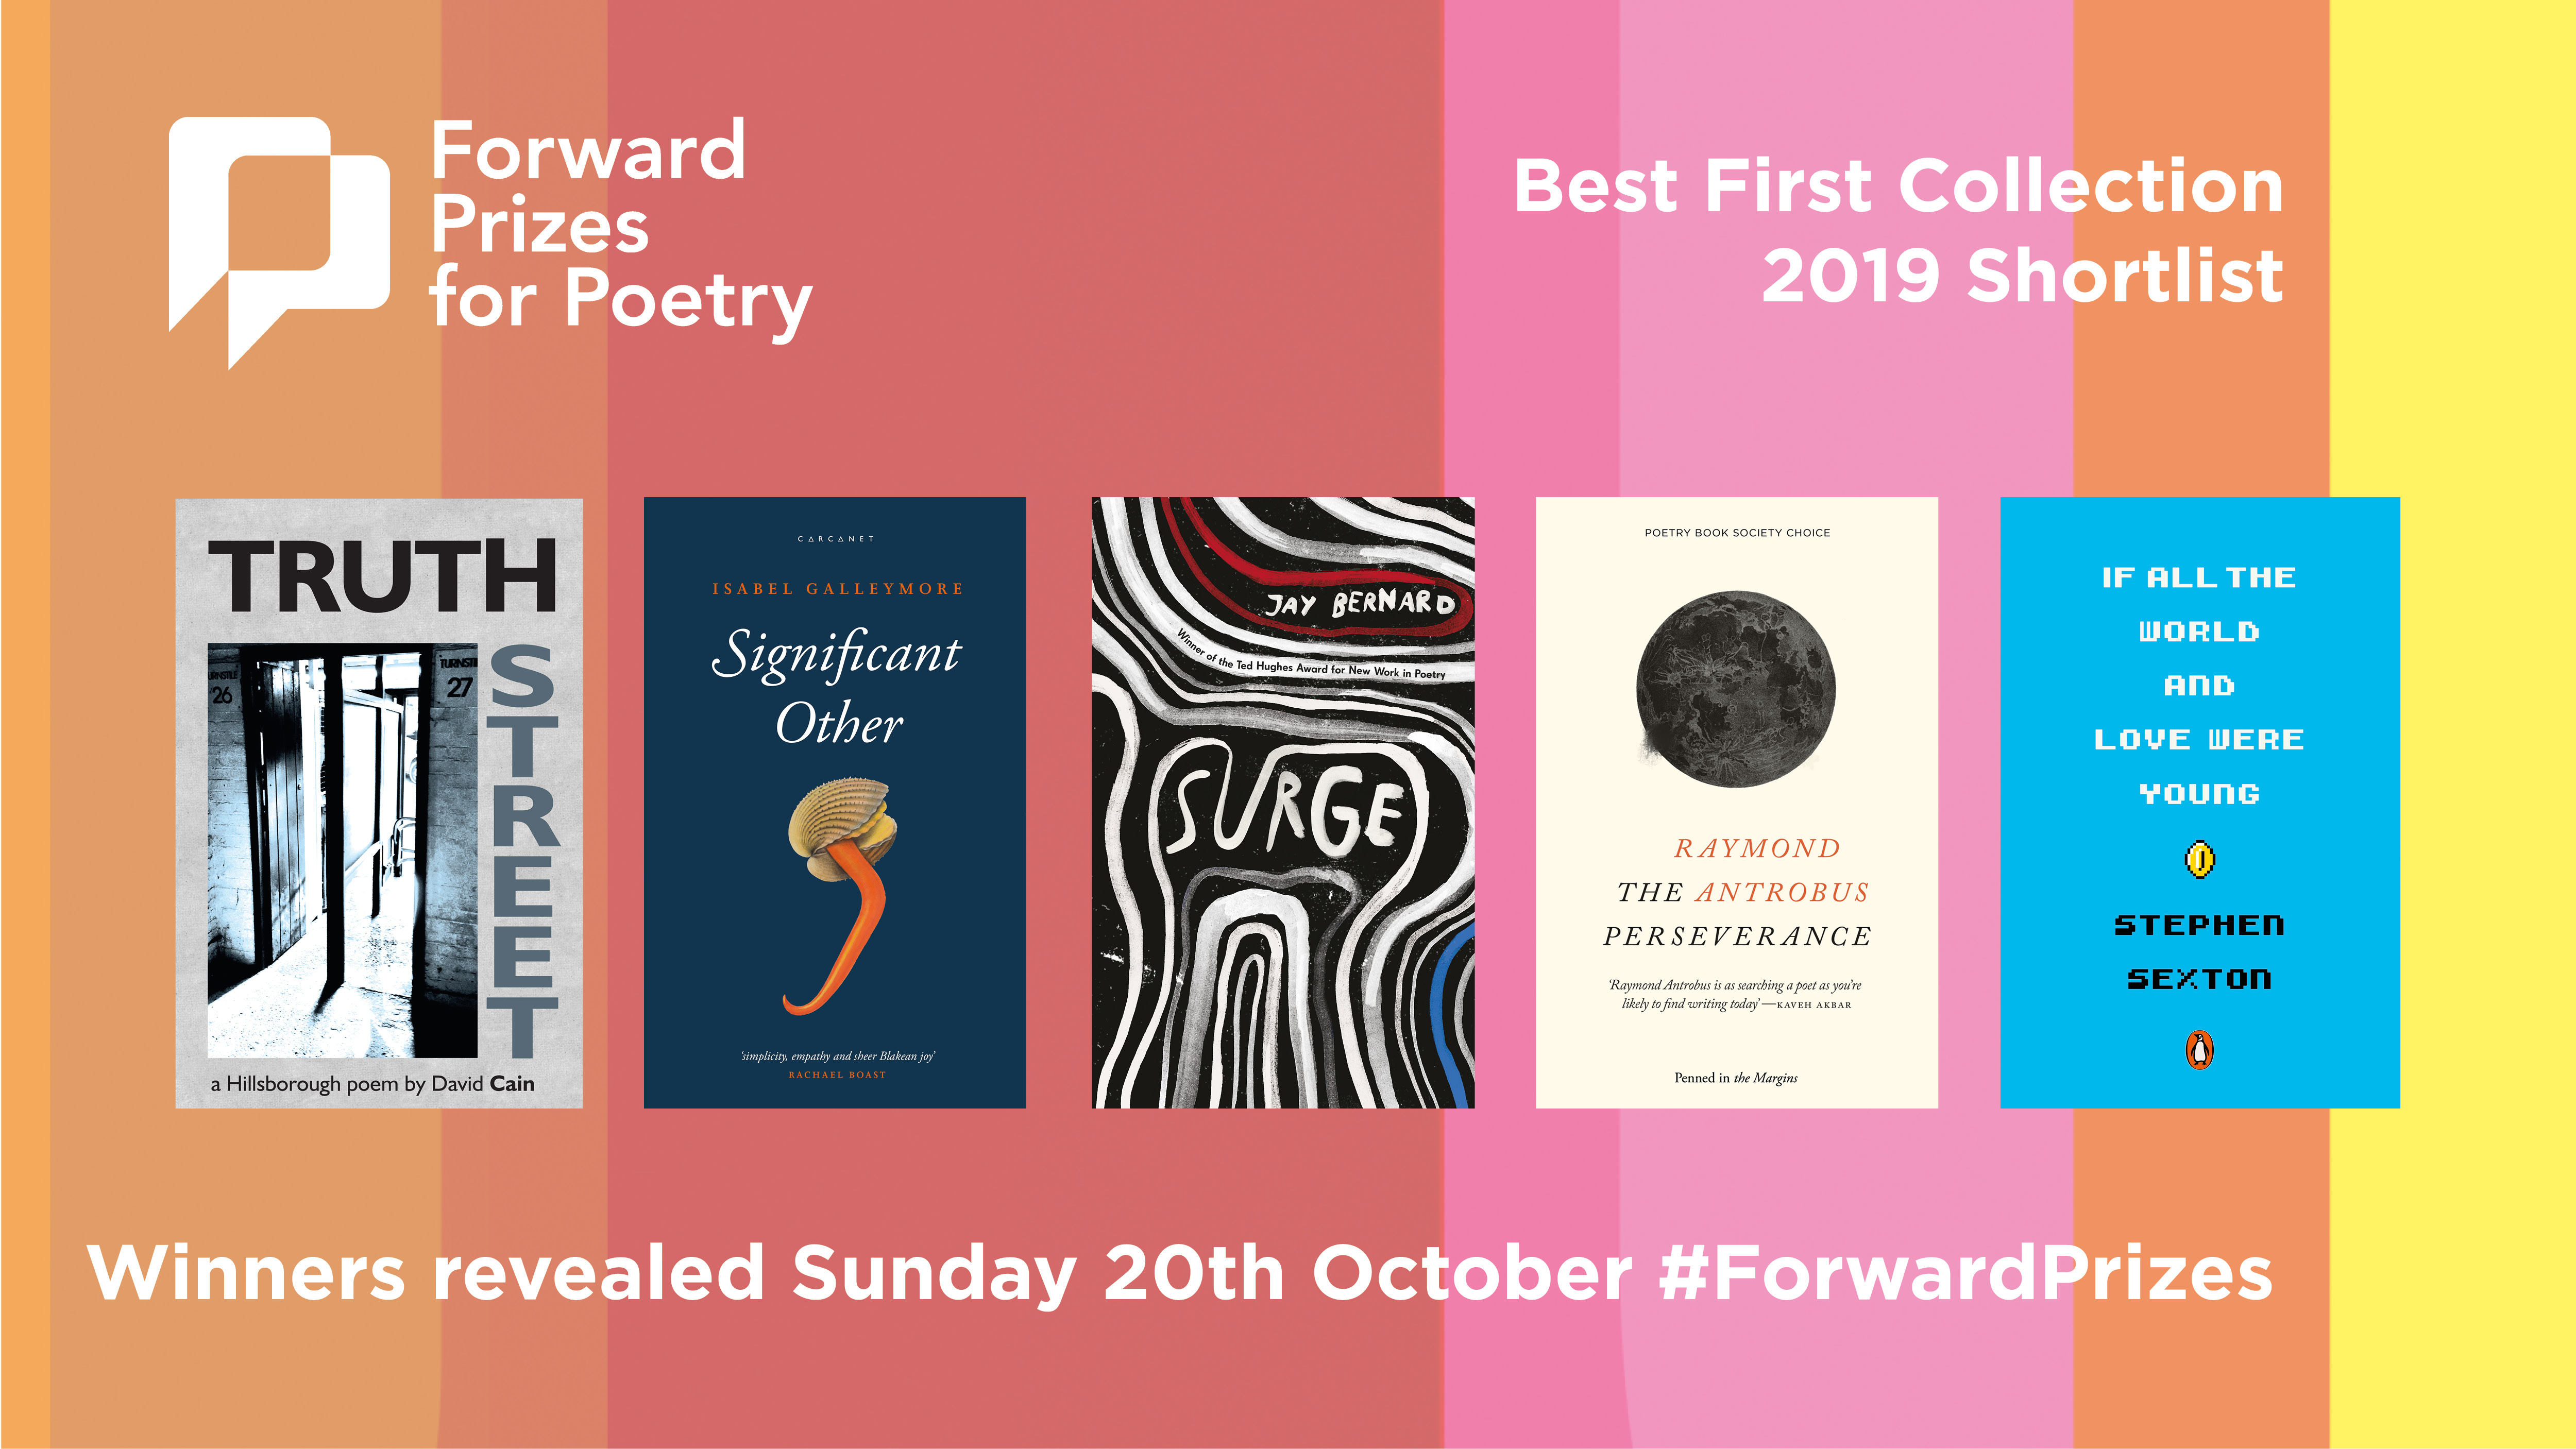 Some of the books shortlisted for The Forward Prizes For Poetry